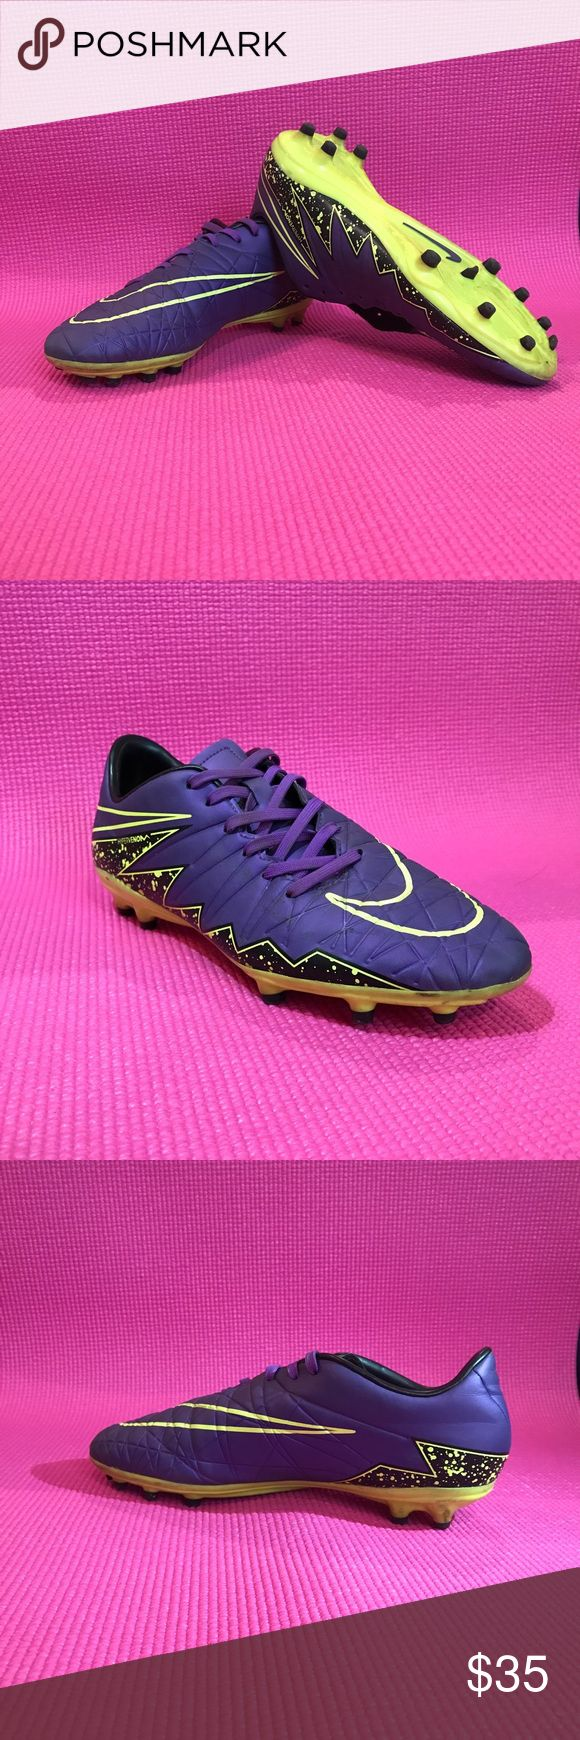 Nike Hypervenom soccer cleats Look brand new used for only one soccer season Nike Shoes Athletic Shoes